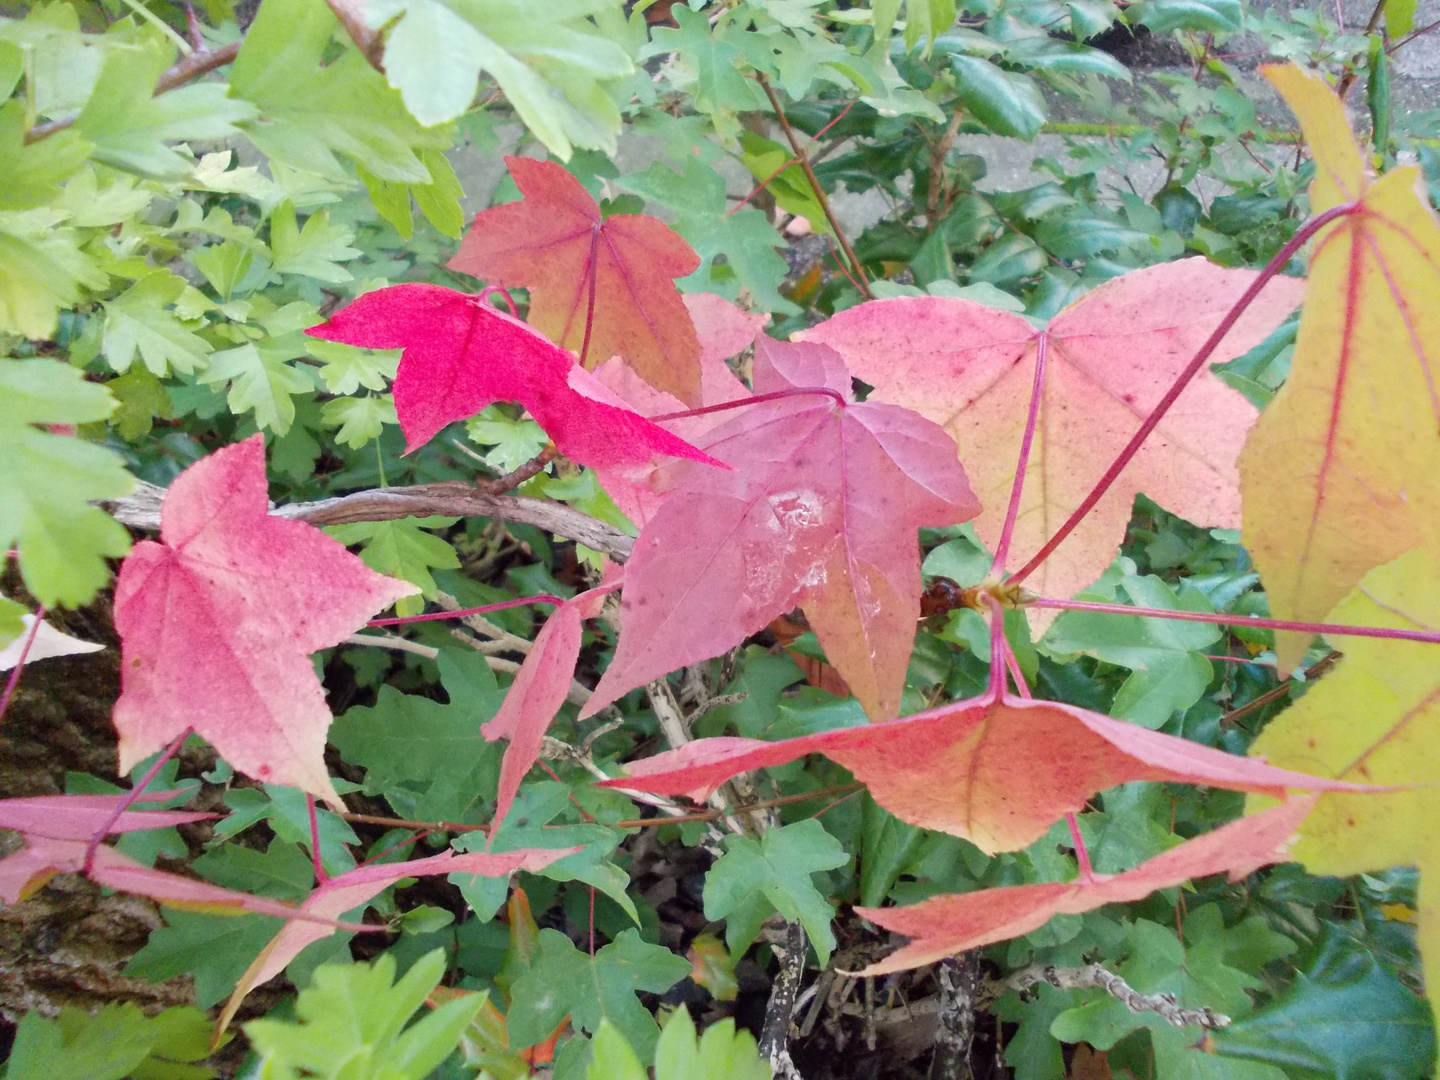 the autumn leaves of red and gold